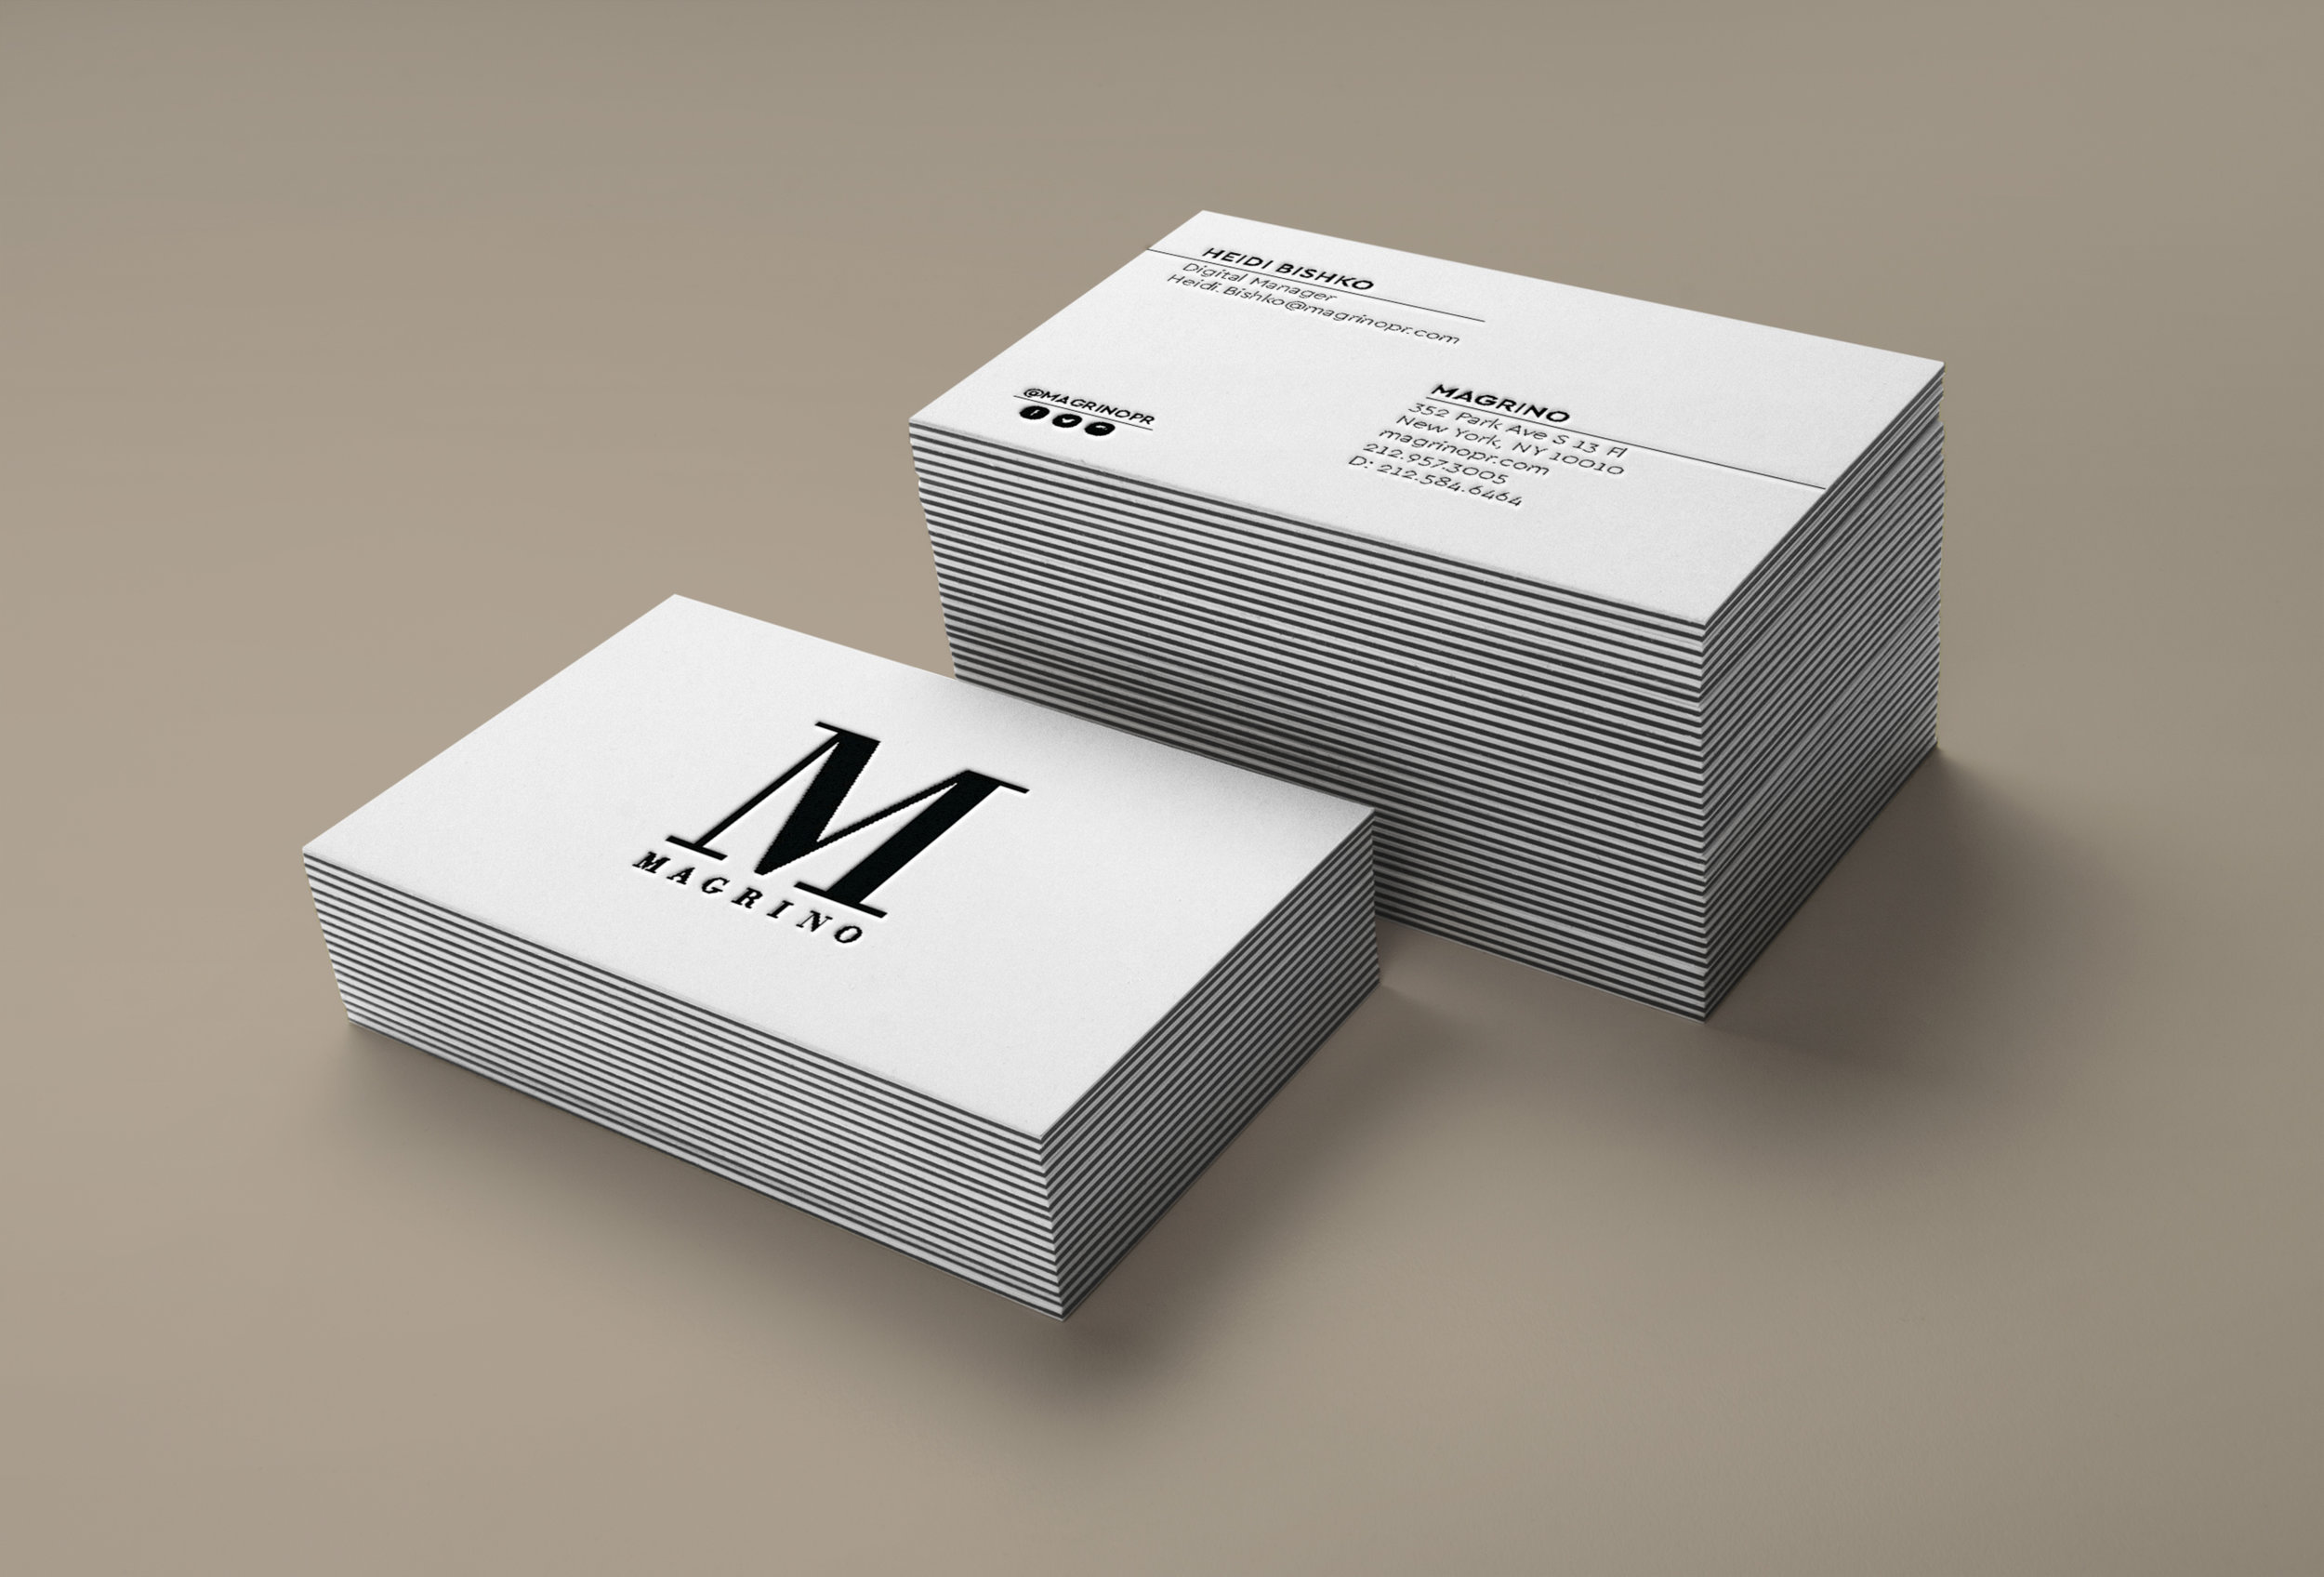 Business Cards redesign  Printed by GSB Digital